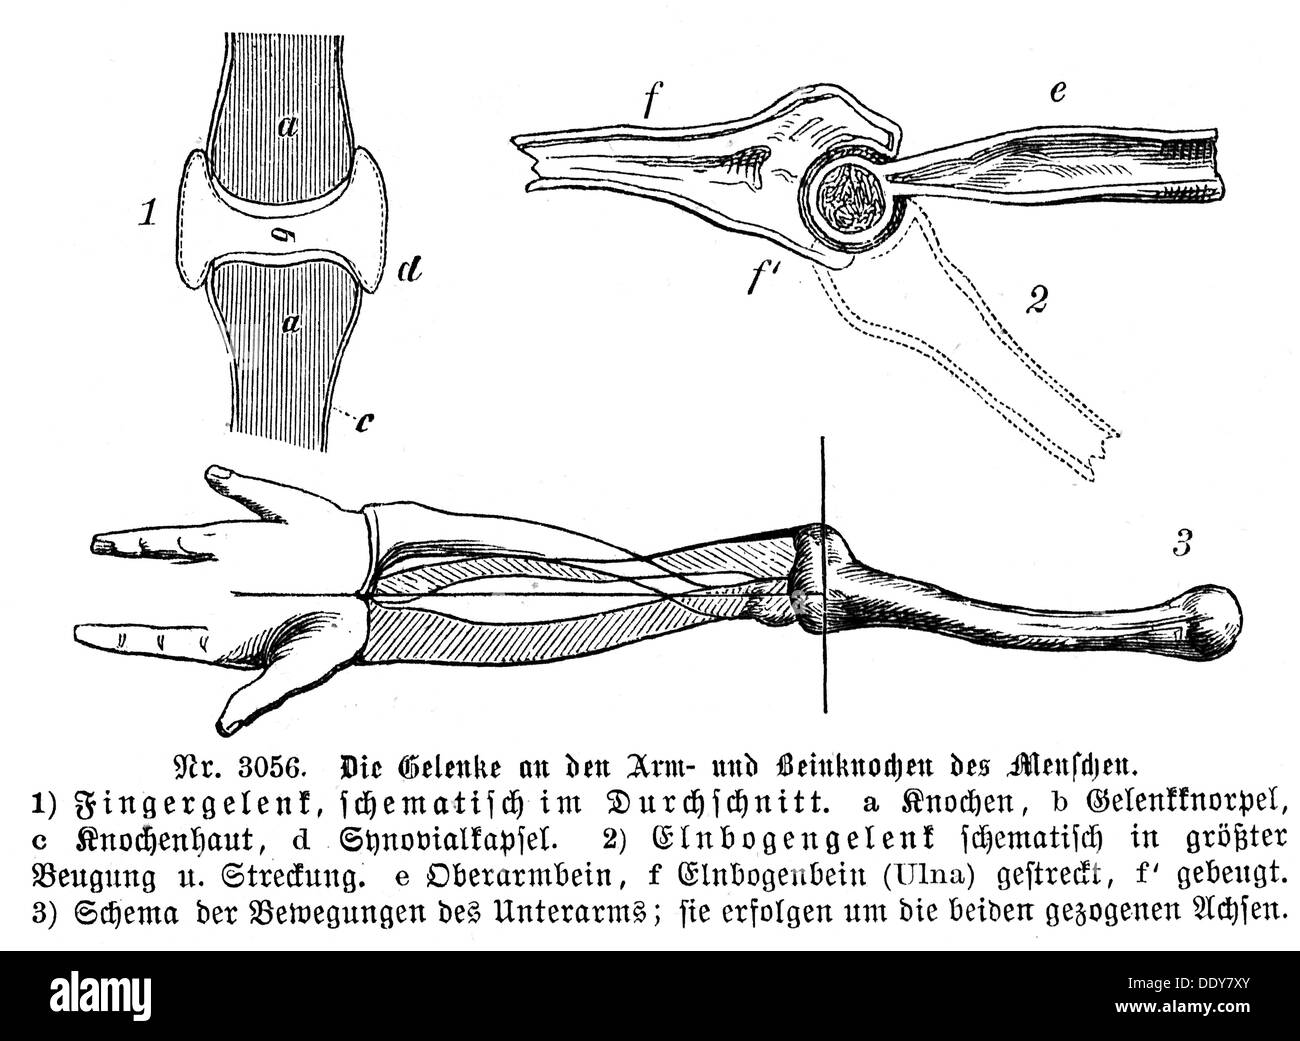 medicine anatomy skeleton / bones joints of the human arm bones and ...